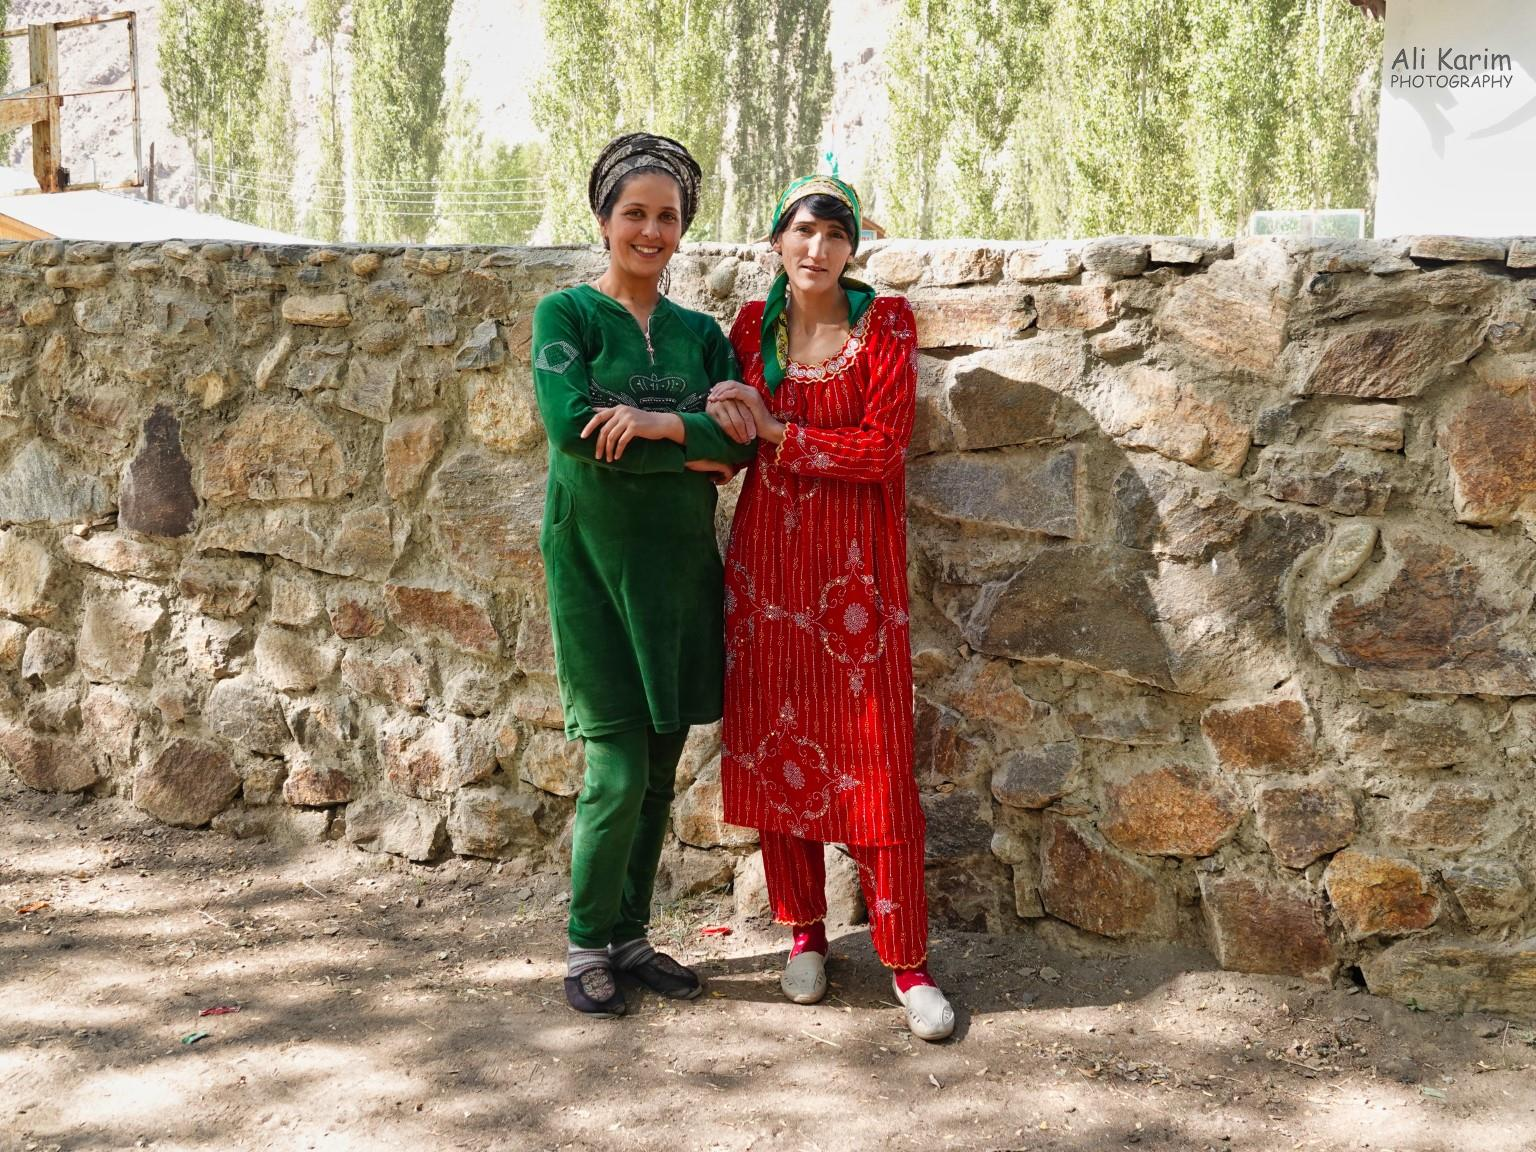 Onto Khorog, Tajikistan, Friendly pamiri ladies nicely dressed in red and green